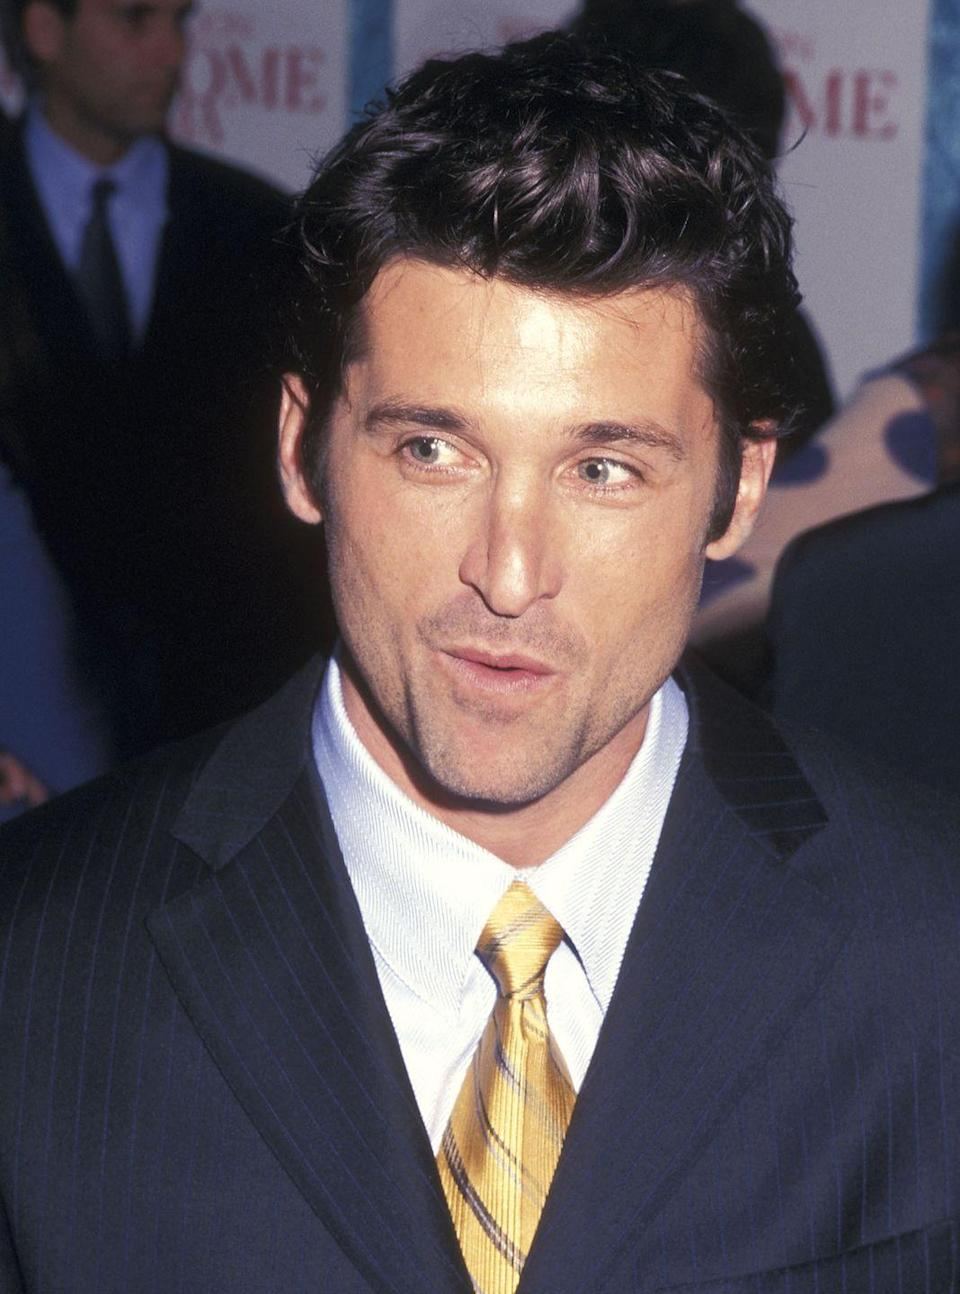 <p>For the Sweet Home Alabama premiere back in the day, Dempsey went full NYC bachelor on the red carpet, as well as in the film. He does it well.</p>